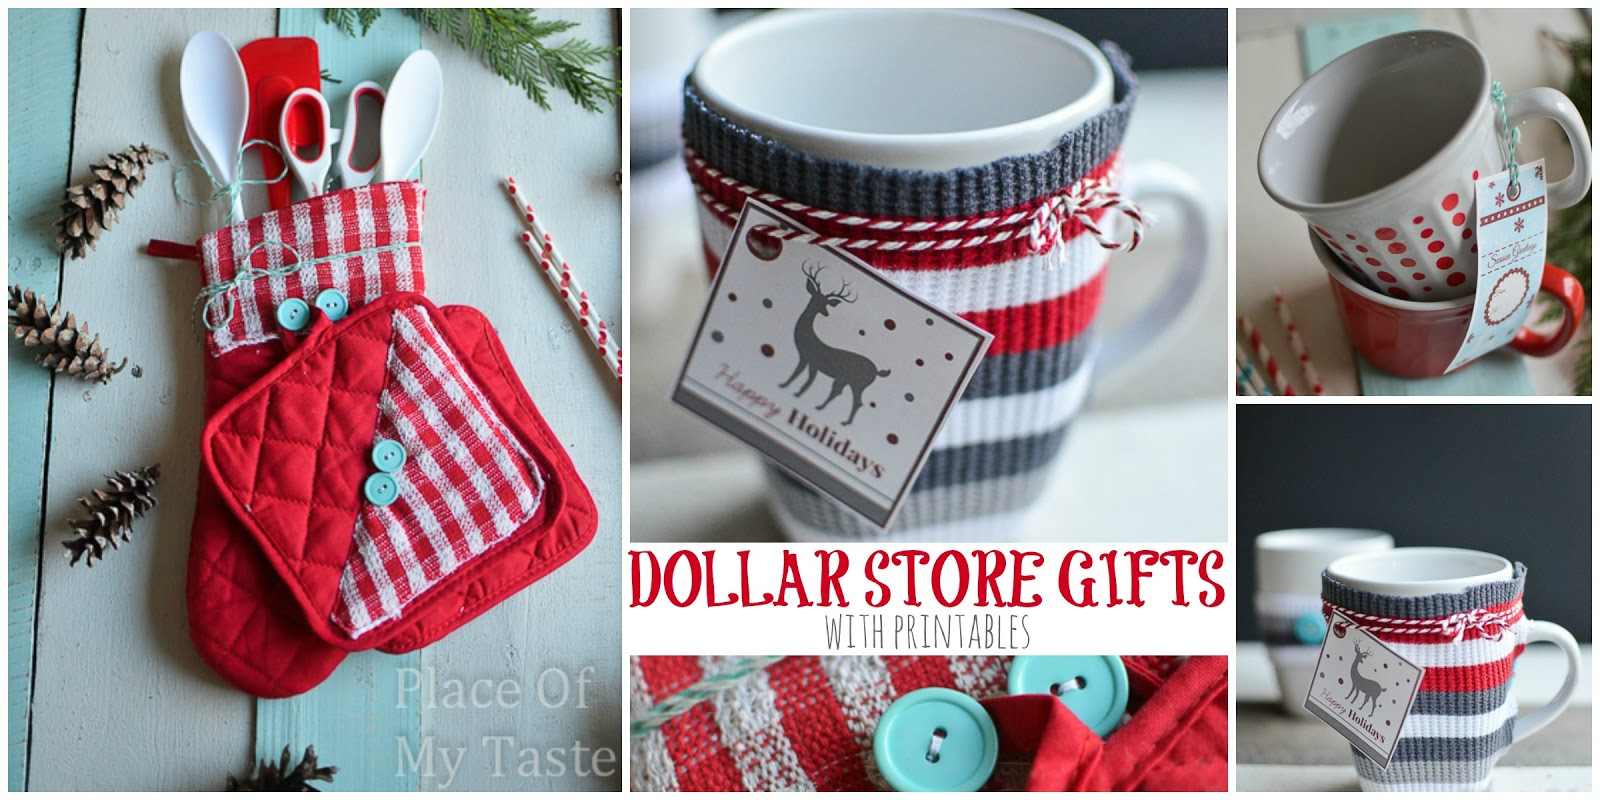 3 LAST MINUTE HANDMADE GIFTS FROM $1 STORE